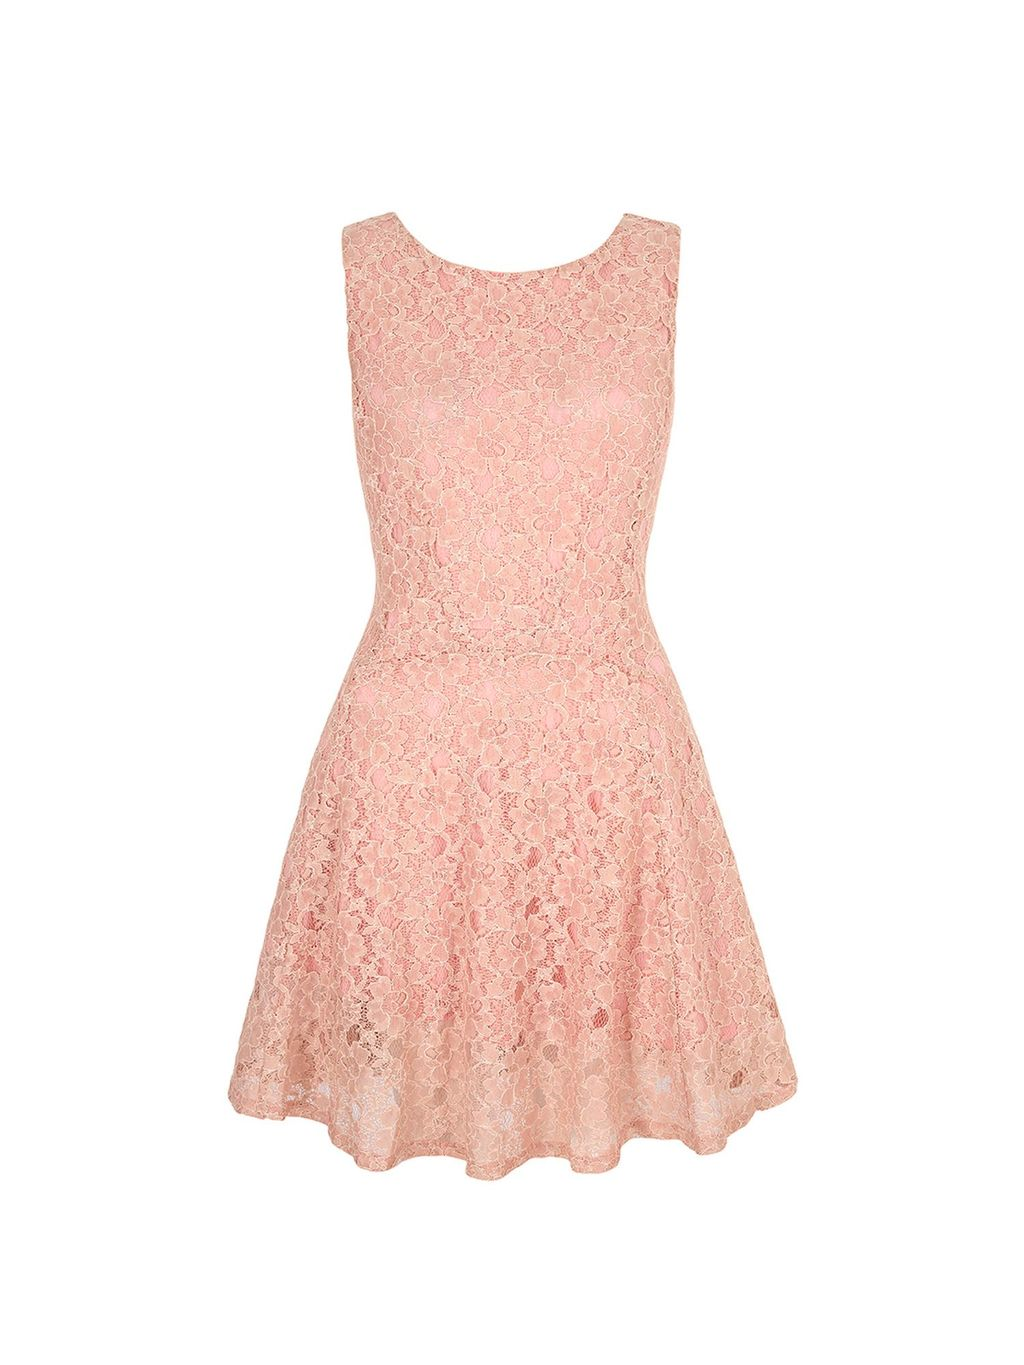 Lace Skater Dress, Blush - length: mid thigh; neckline: round neck; sleeve style: sleeveless; predominant colour: nude; fit: fitted at waist & bust; style: fit & flare; occasions: occasion; sleeve length: sleeveless; texture group: lace; pattern type: fabric; pattern size: standard; pattern: patterned/print; fibres: viscose/rayon - mix; embellishment: lace; season: s/s 2016; wardrobe: event